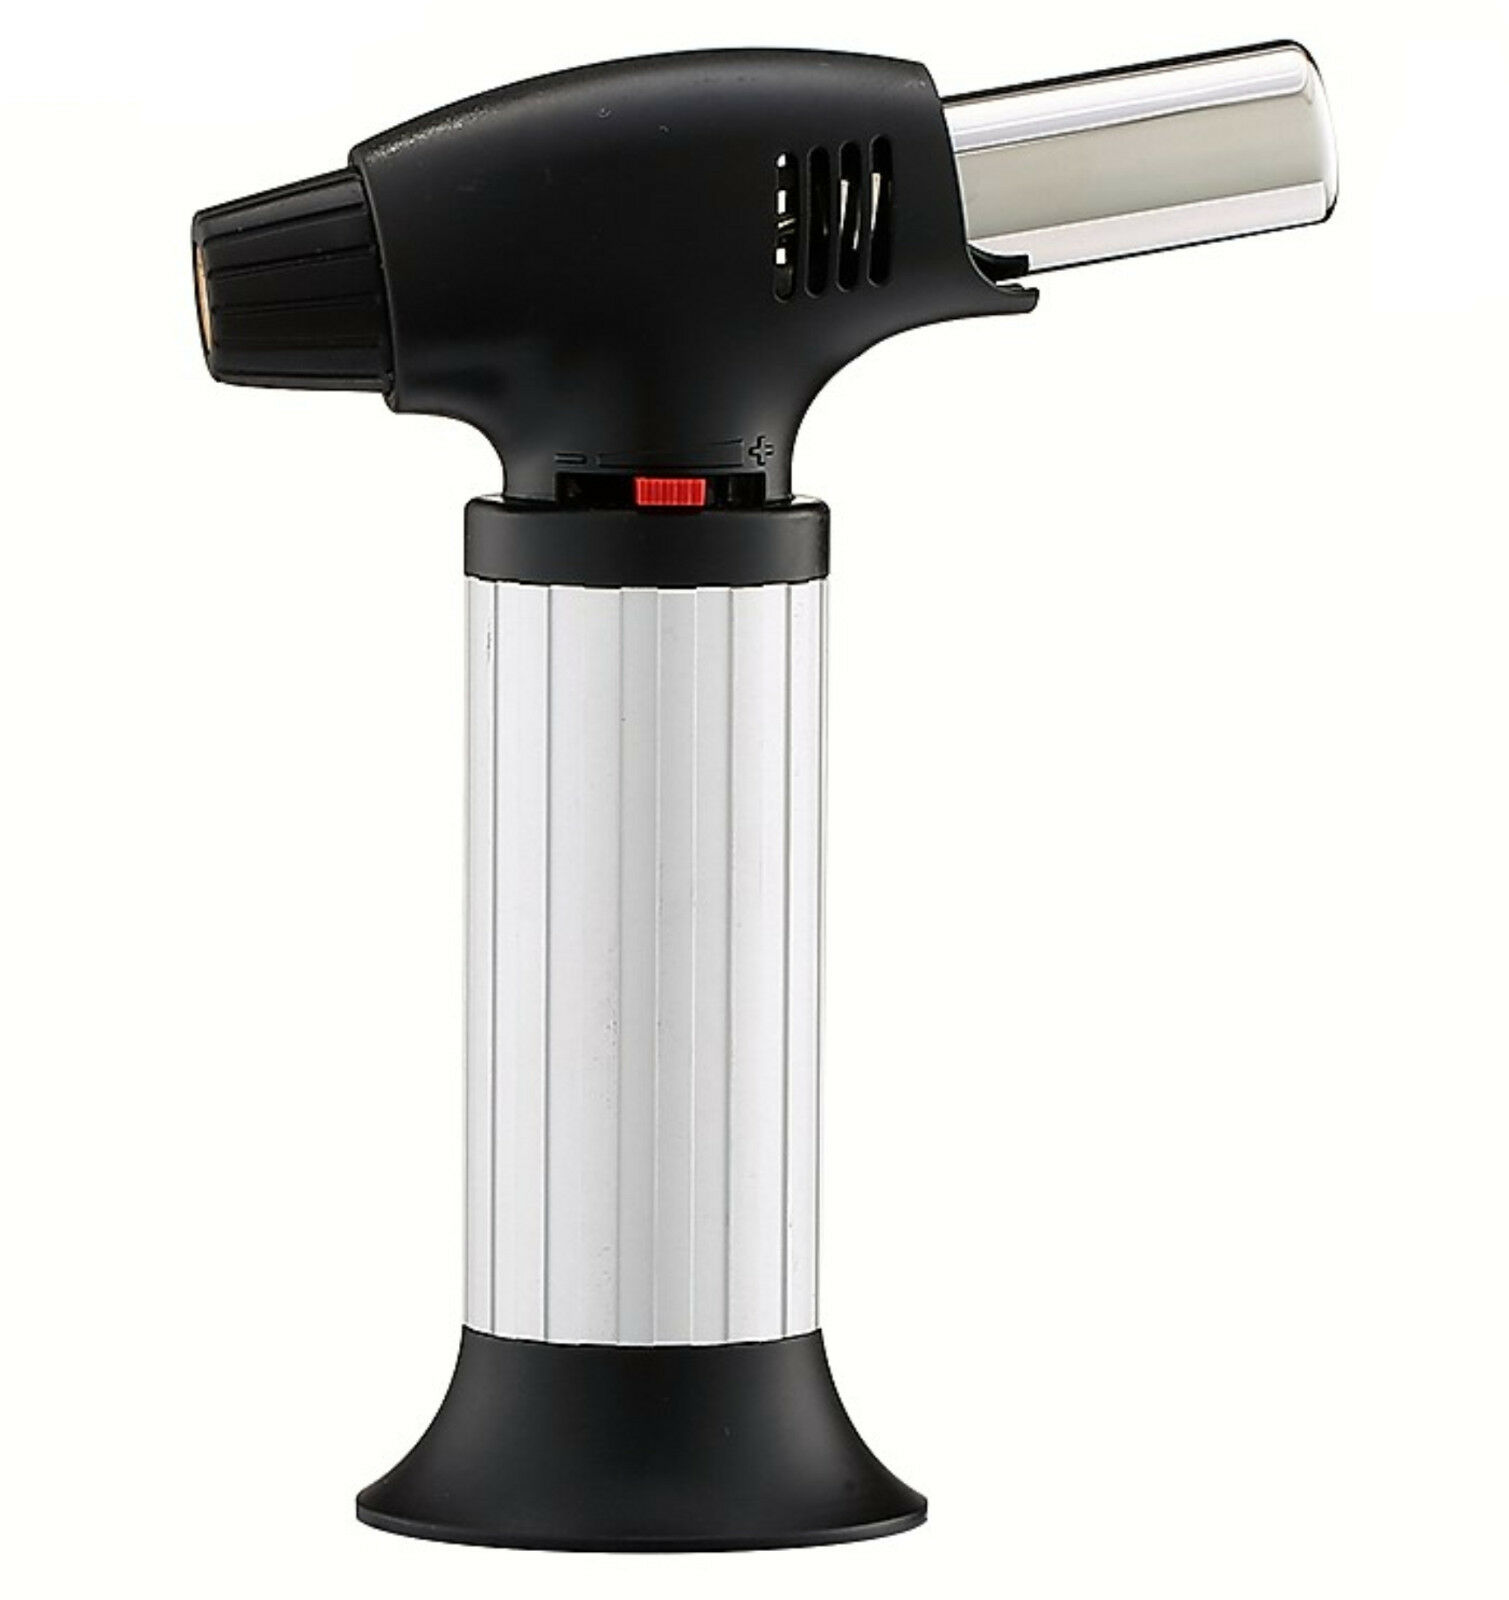 blowtorch chef culinary torch Creme Brulee bbq refillable butane